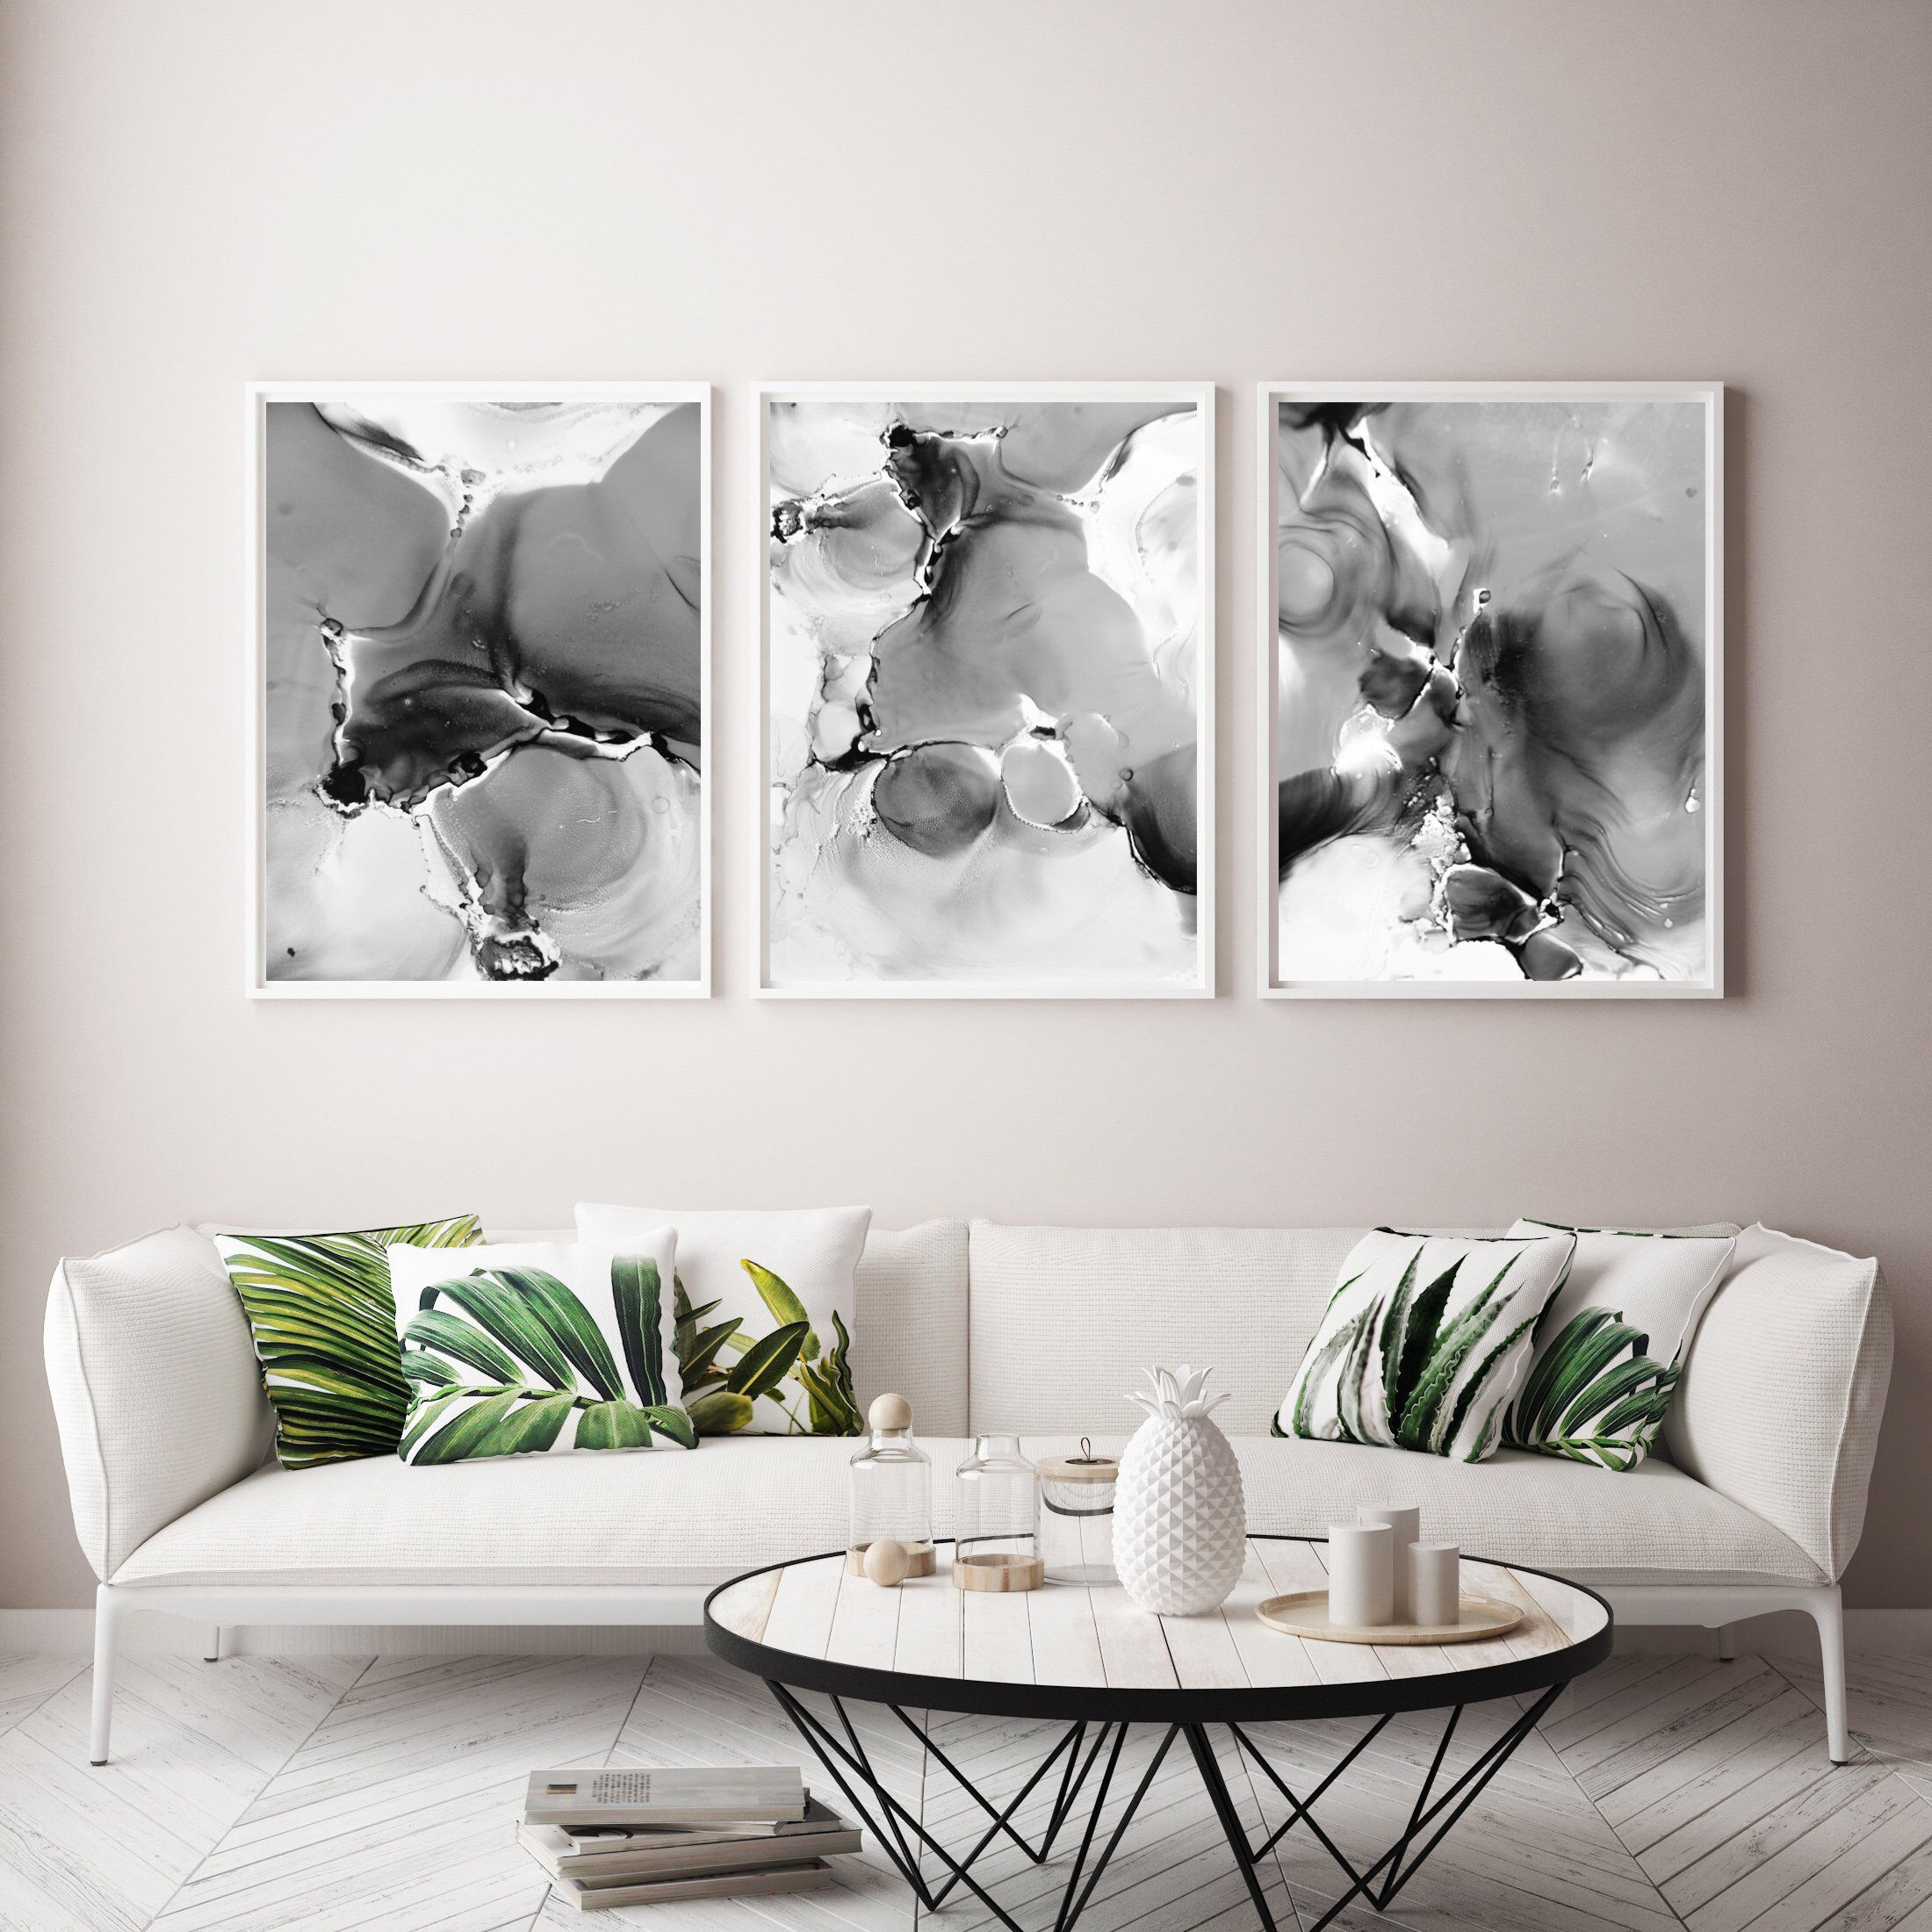 3 Piece Wall Art Large Printable Art Printable Abstract Art Etsy In 2020 3 Piece Wall Art Printable Art Printable Art Set